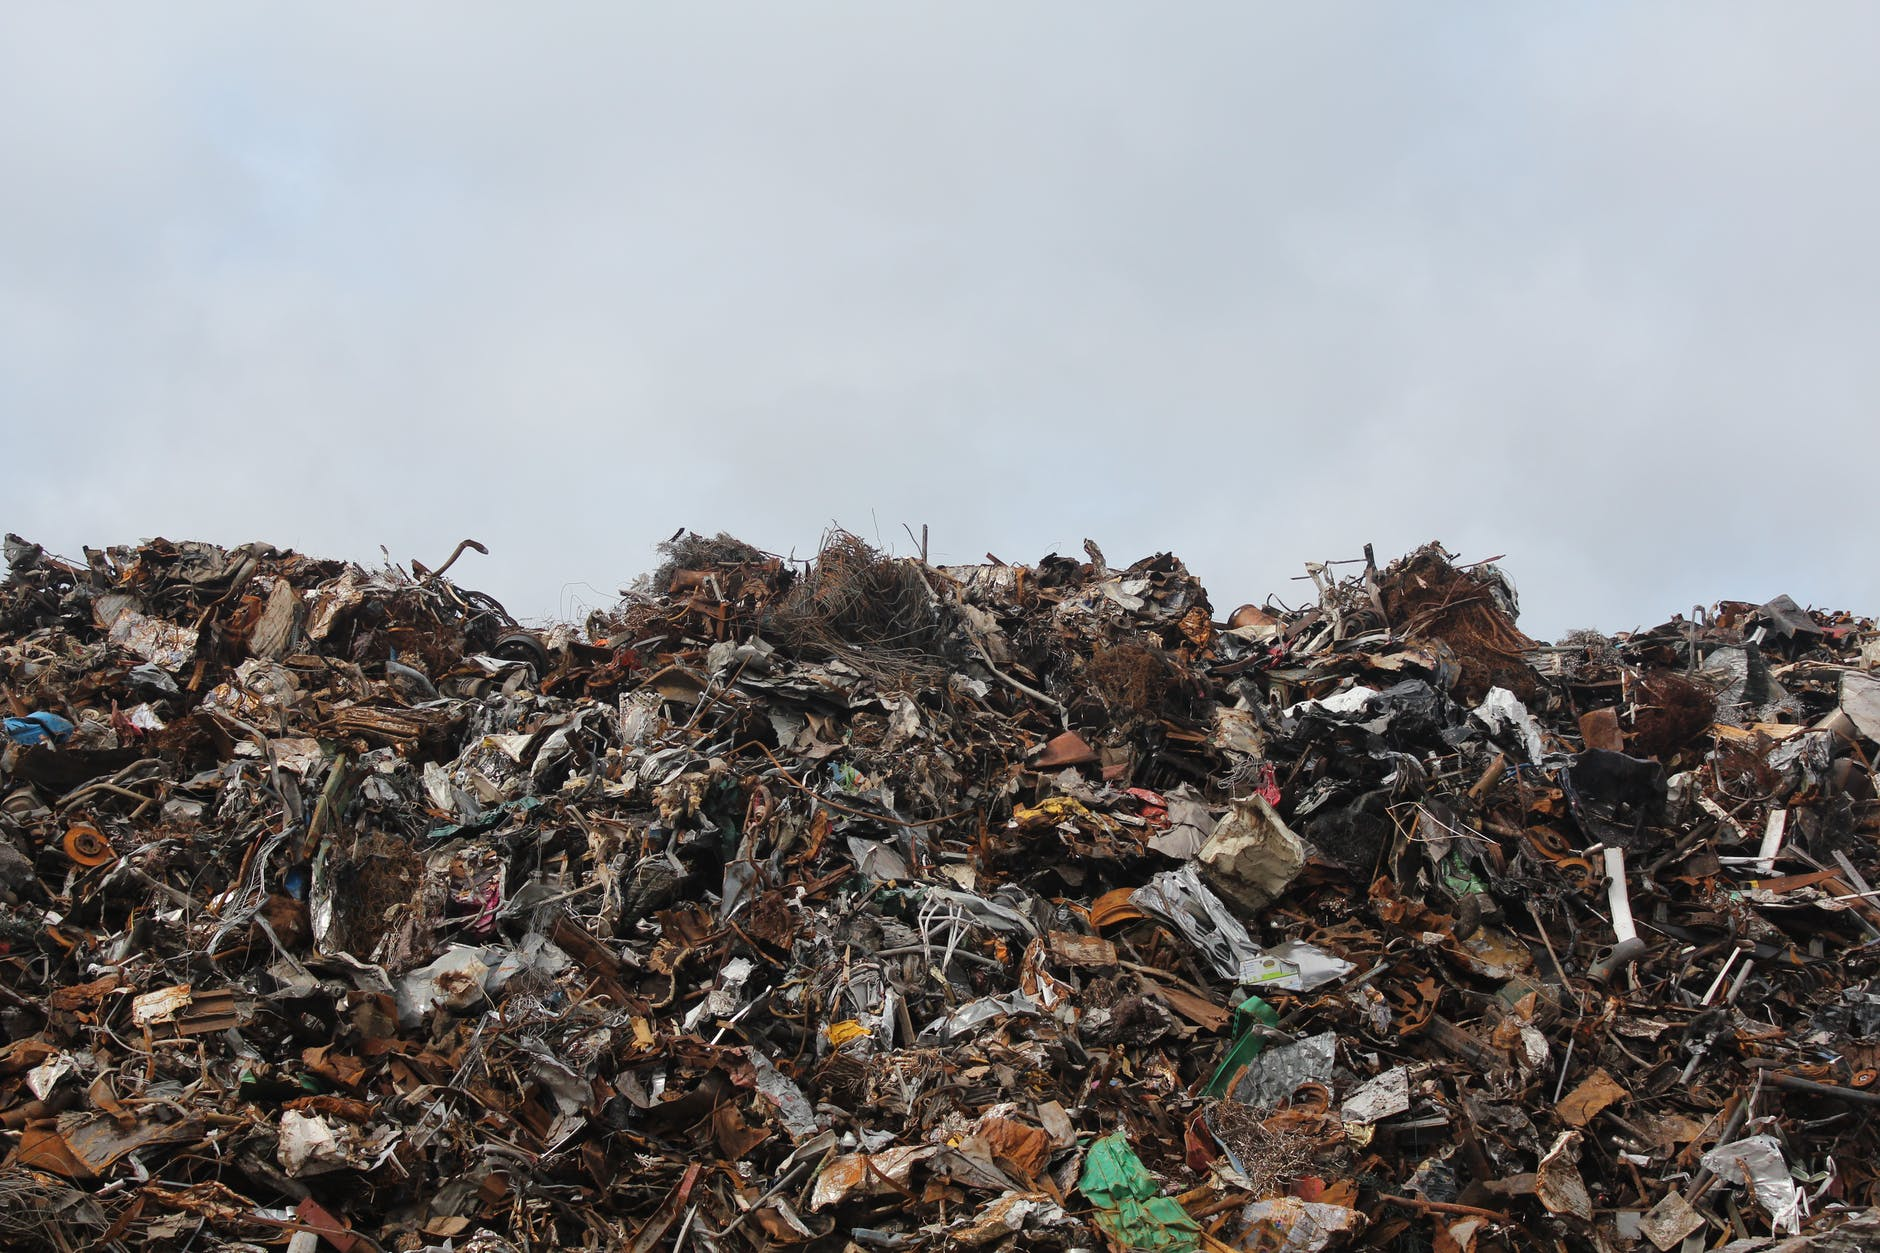 Landfill is not a sustainable method of waste management